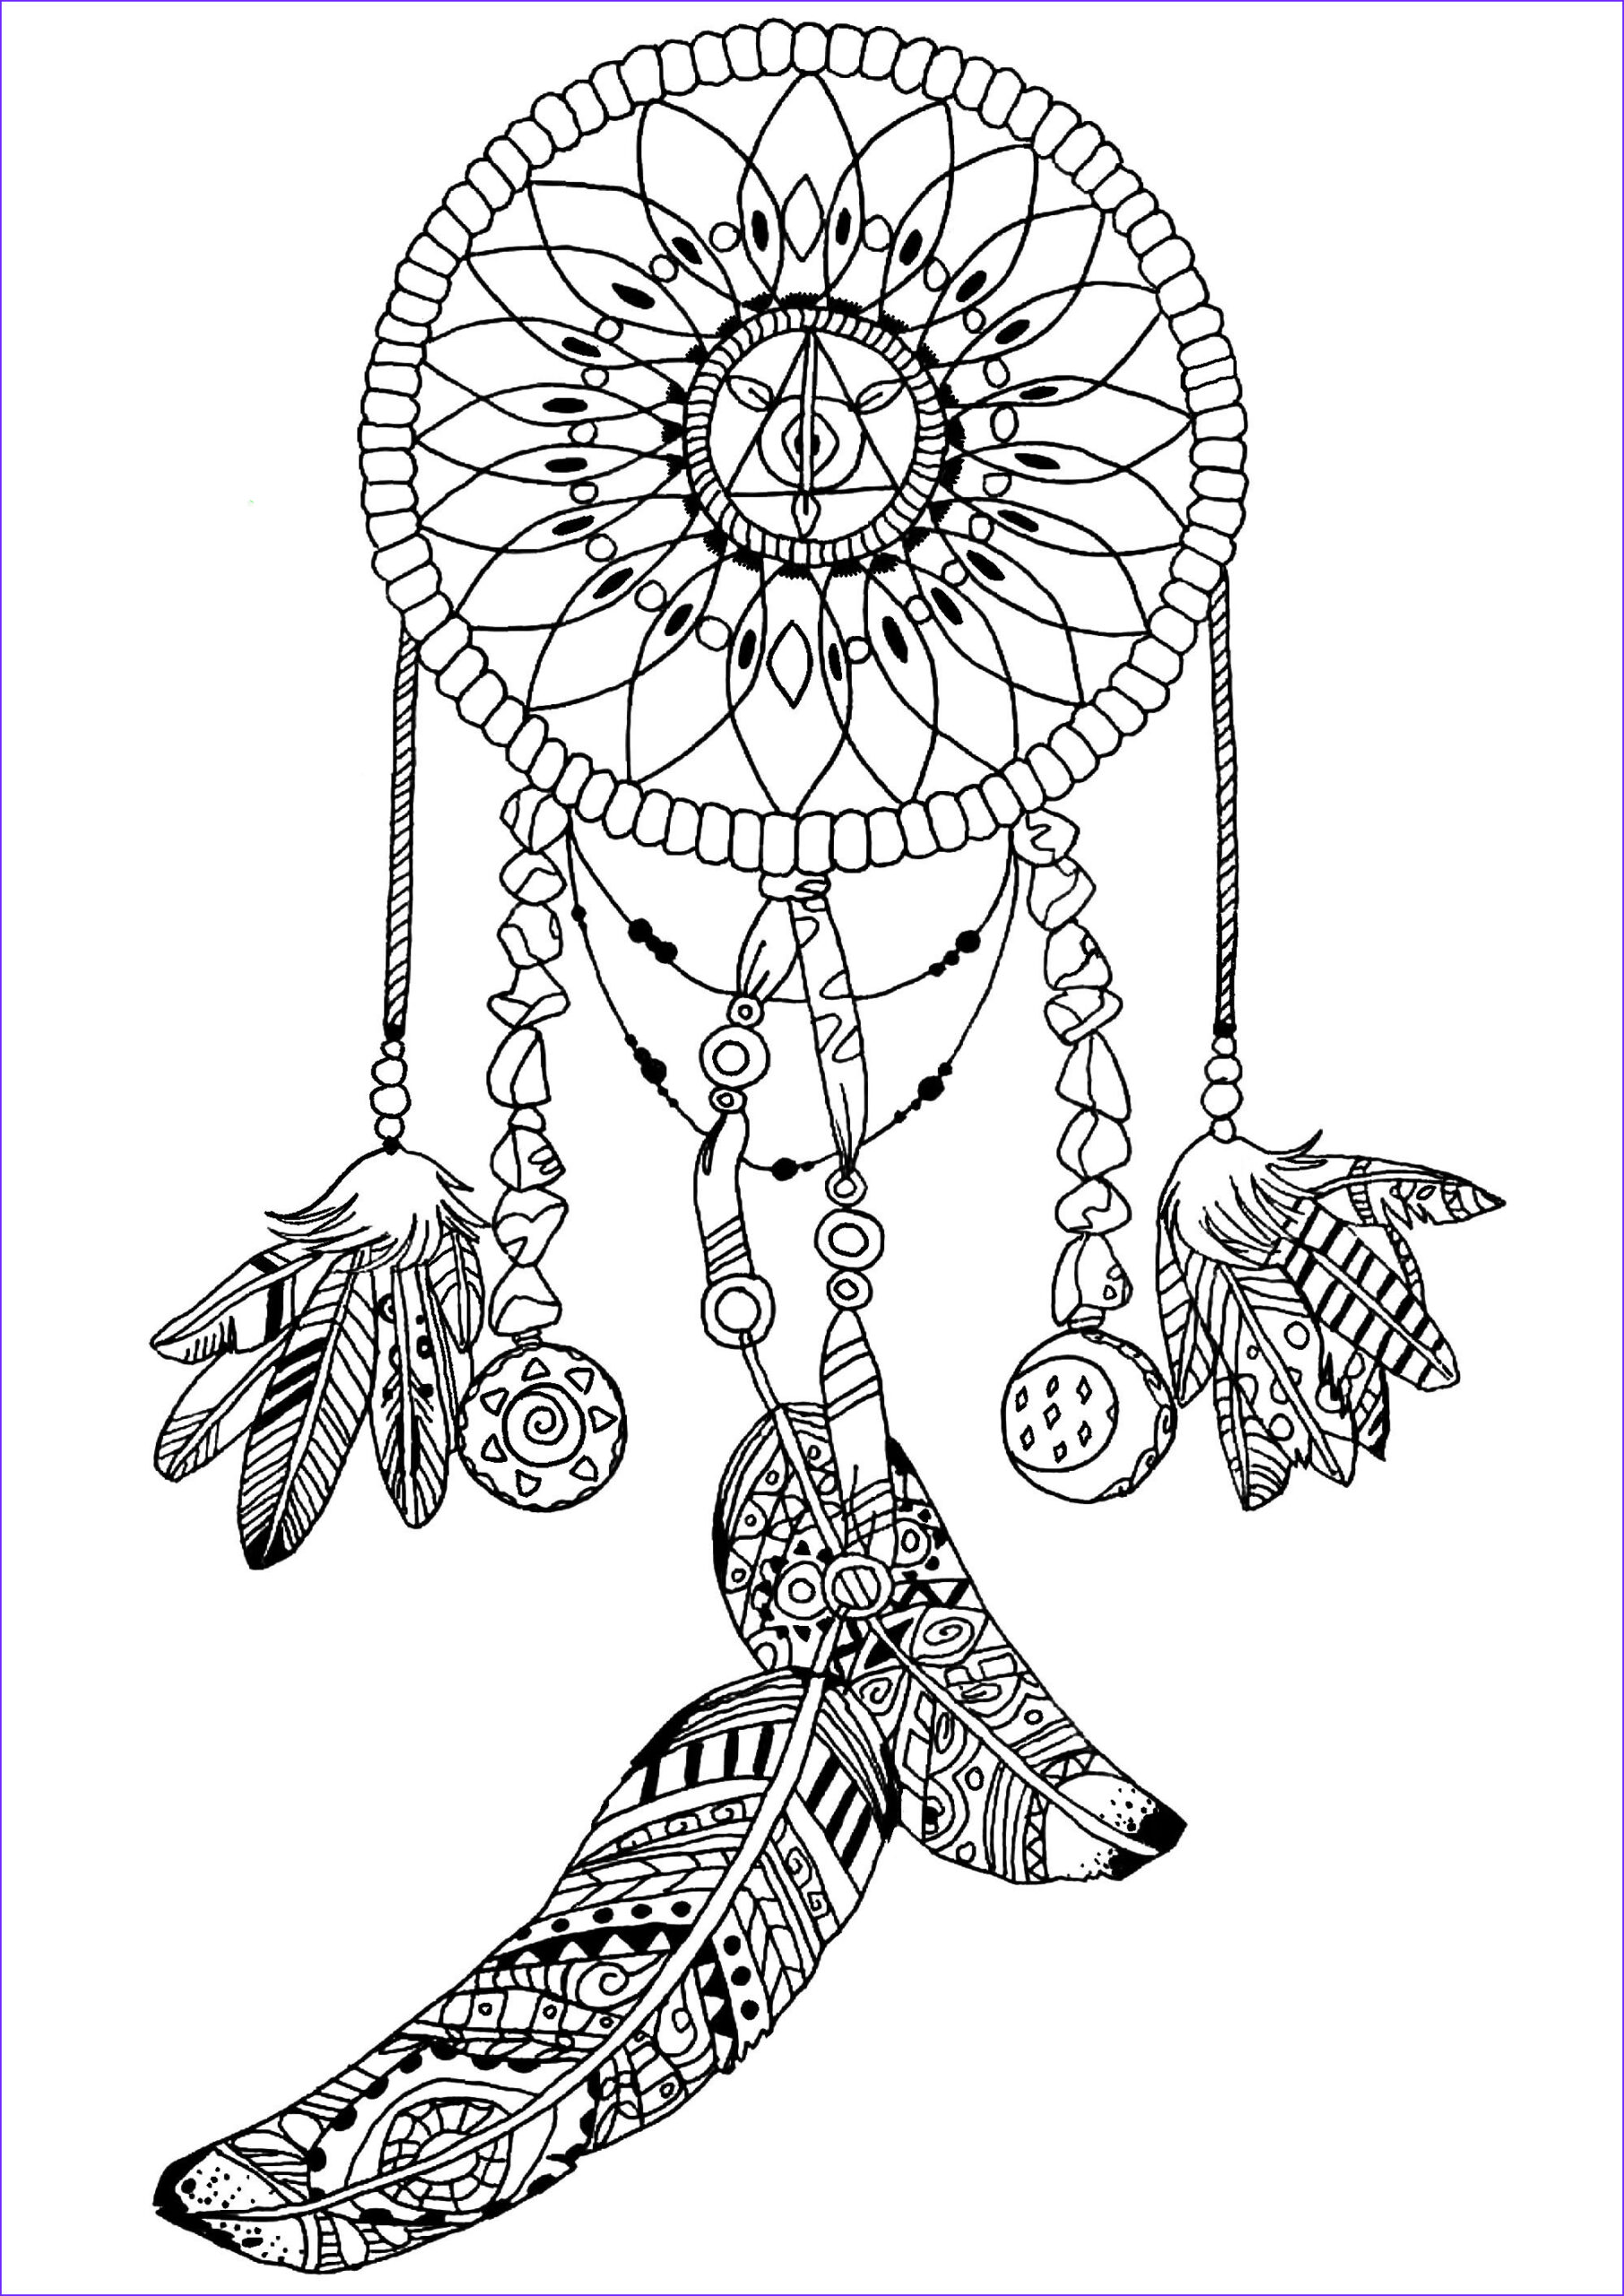 Free Coloring Pages for Adults Beautiful Photos Coloring Pages for Adults Our Adult Coloring Pages Galleries